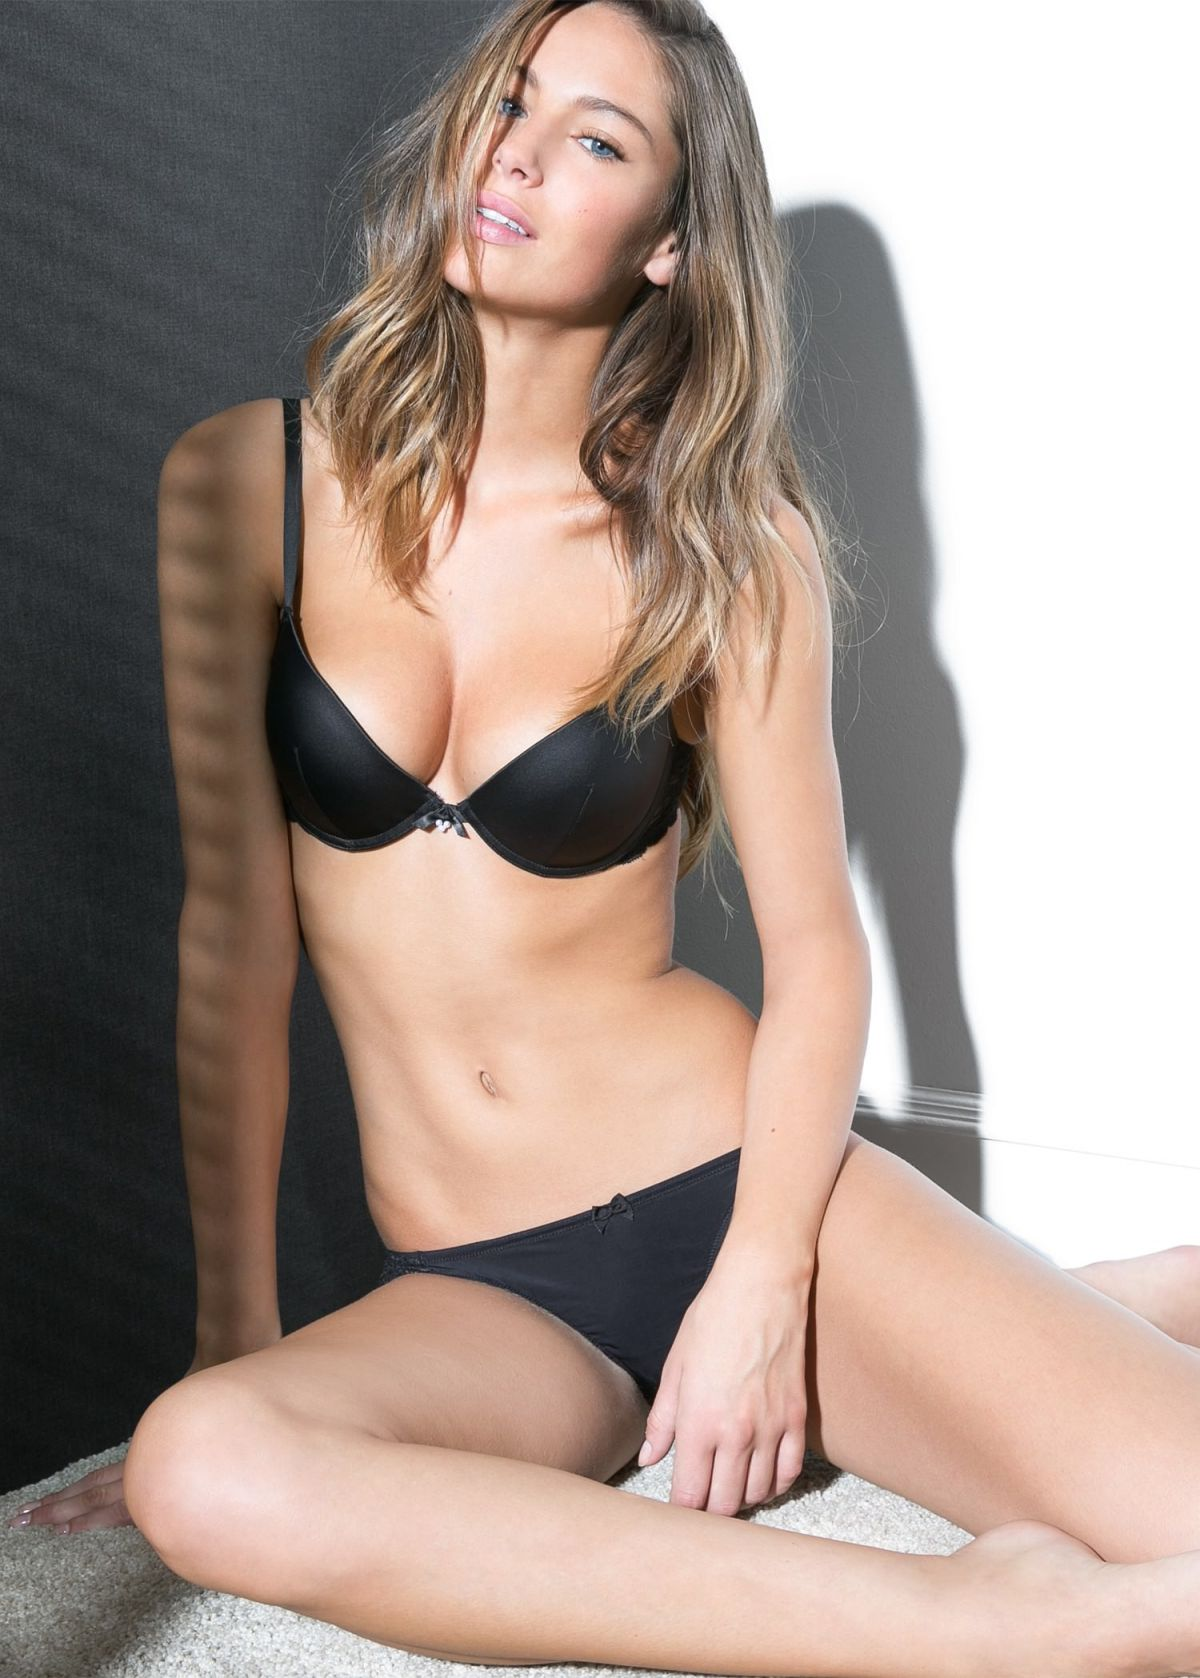 Celebrity Mathilde Gohler nude (89 foto and video), Ass, Cleavage, Boobs, bra 2019